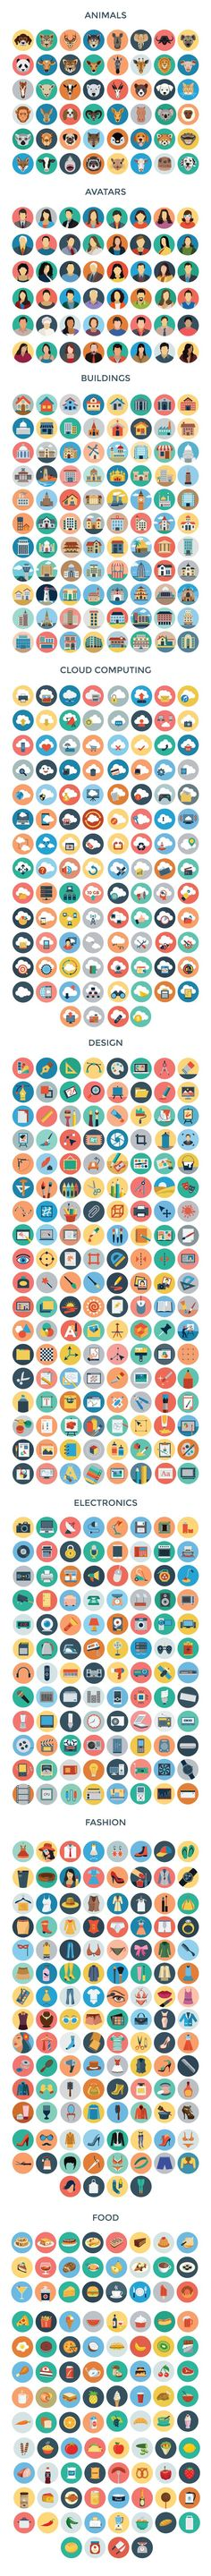 3200+ Flat Vector Icons by Creative Stall on Creative Market